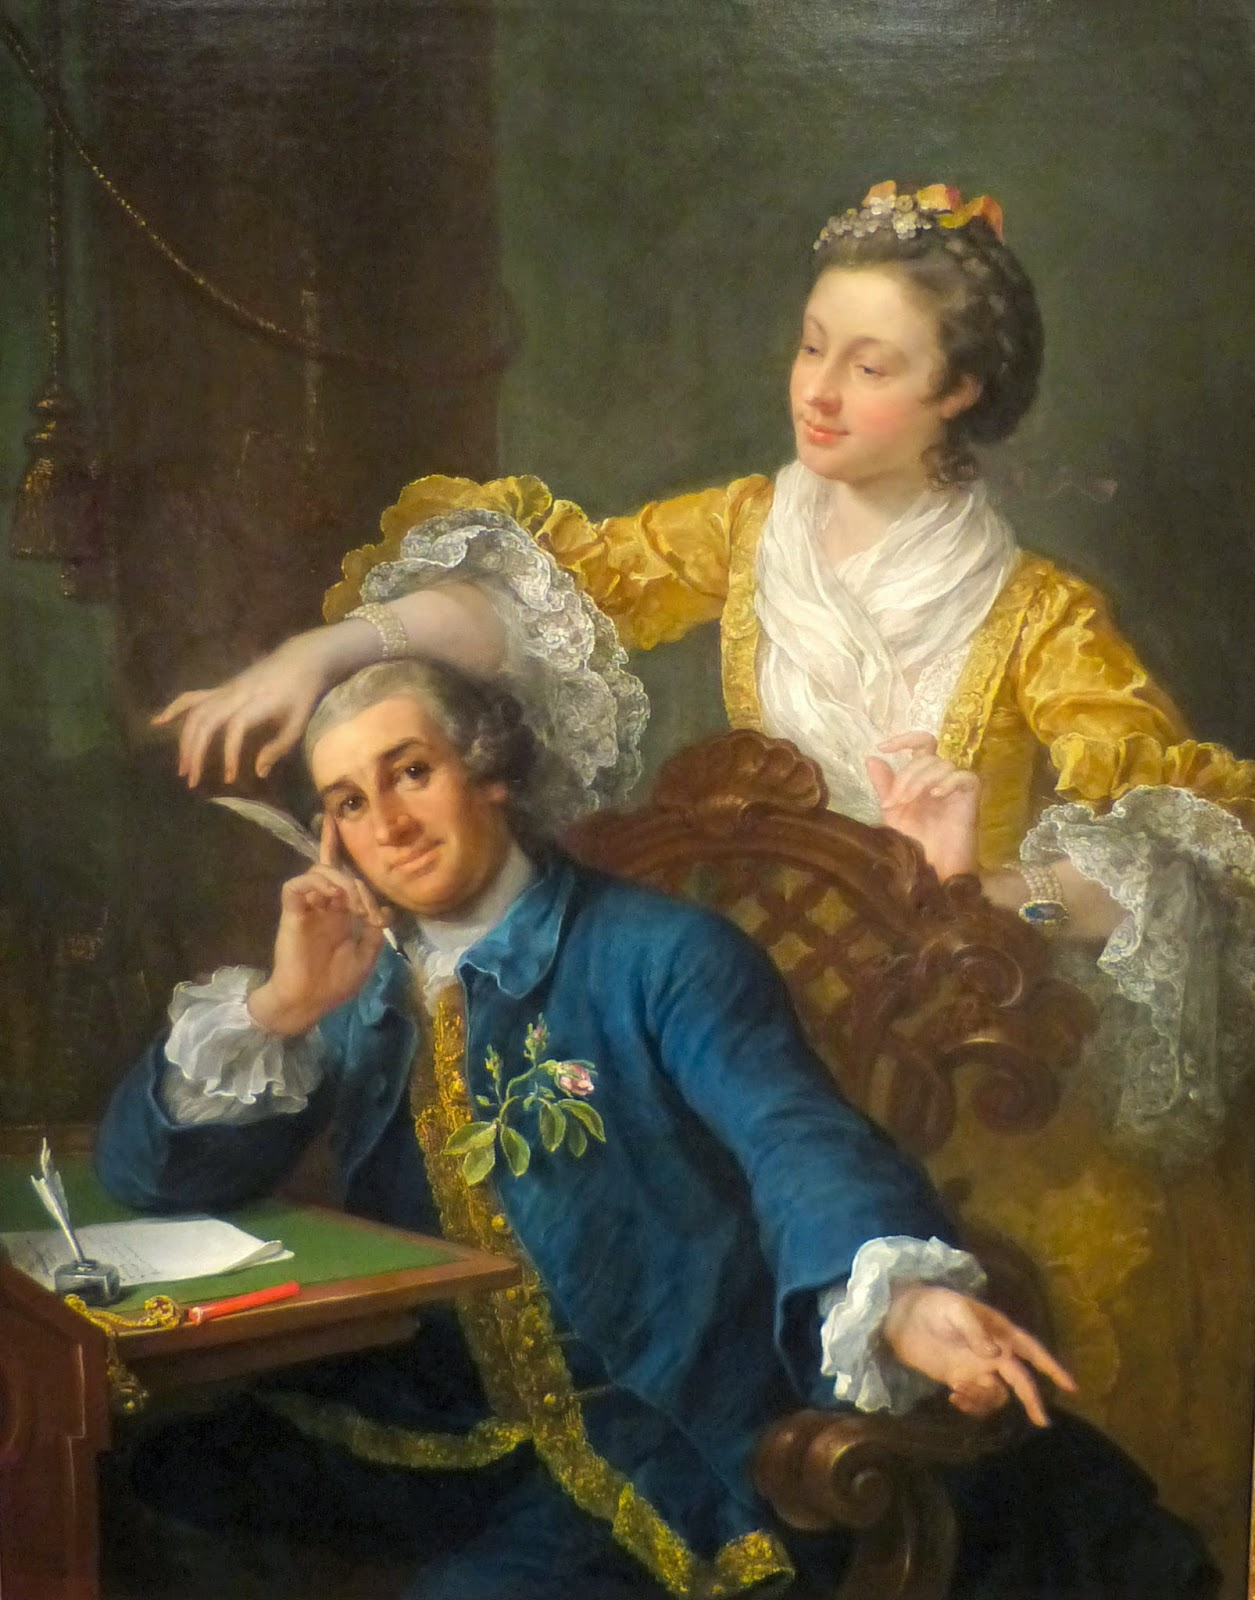 David Garrick and his wife, Eva-Maria Veigel  by William Hogarth (1757-64)